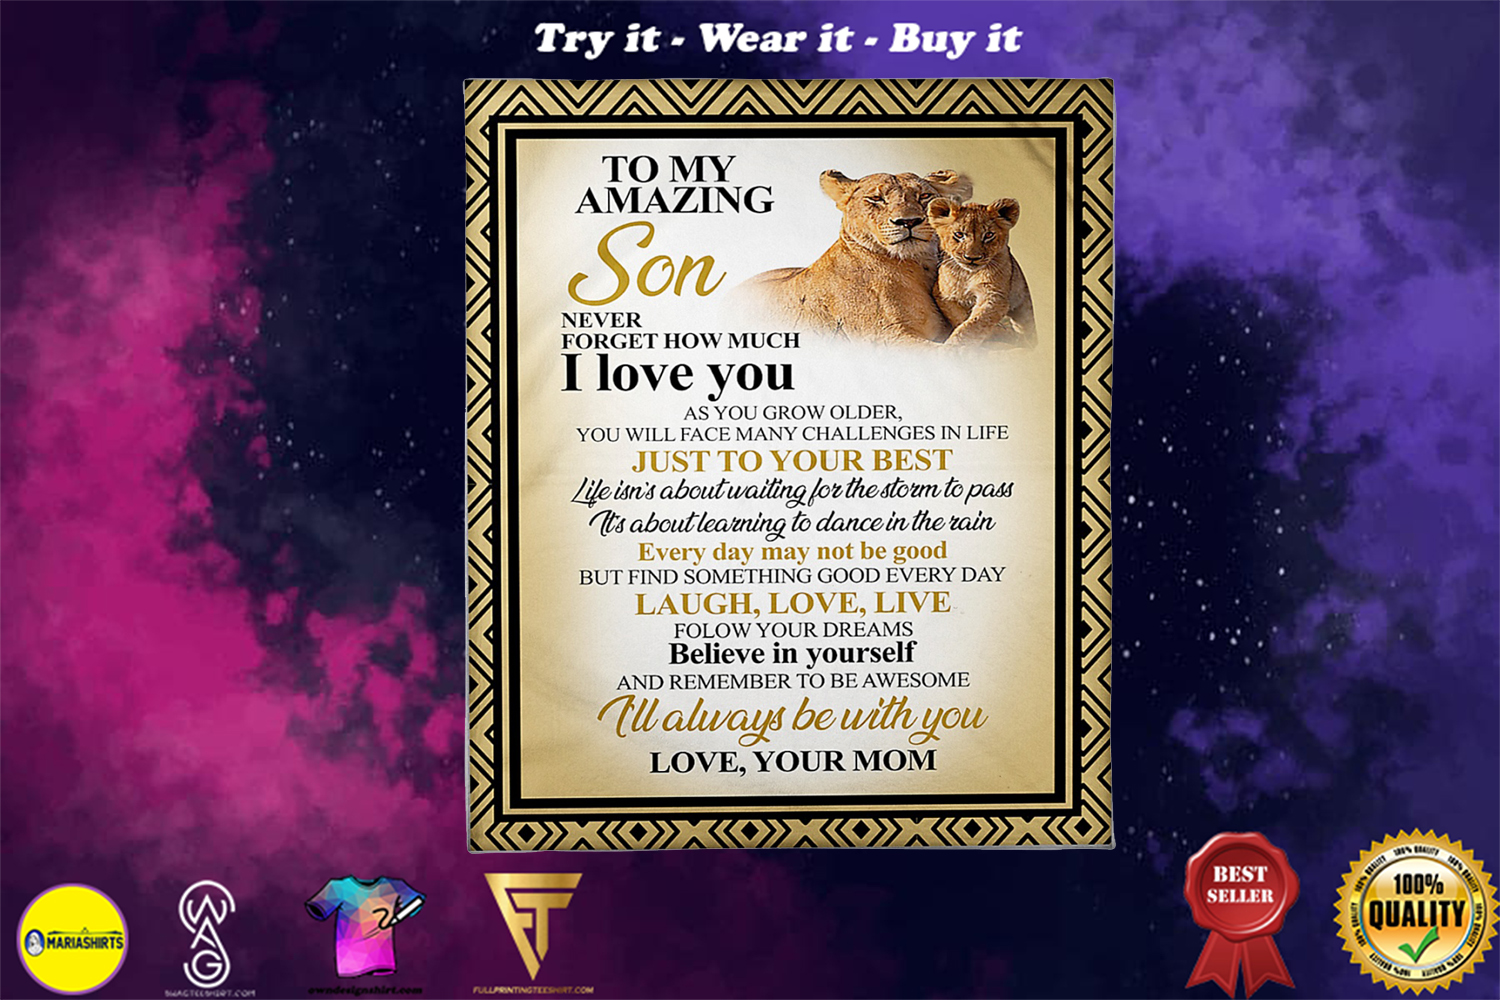 lion to my amazing son never forget how much i love you blanket - Copy (2)